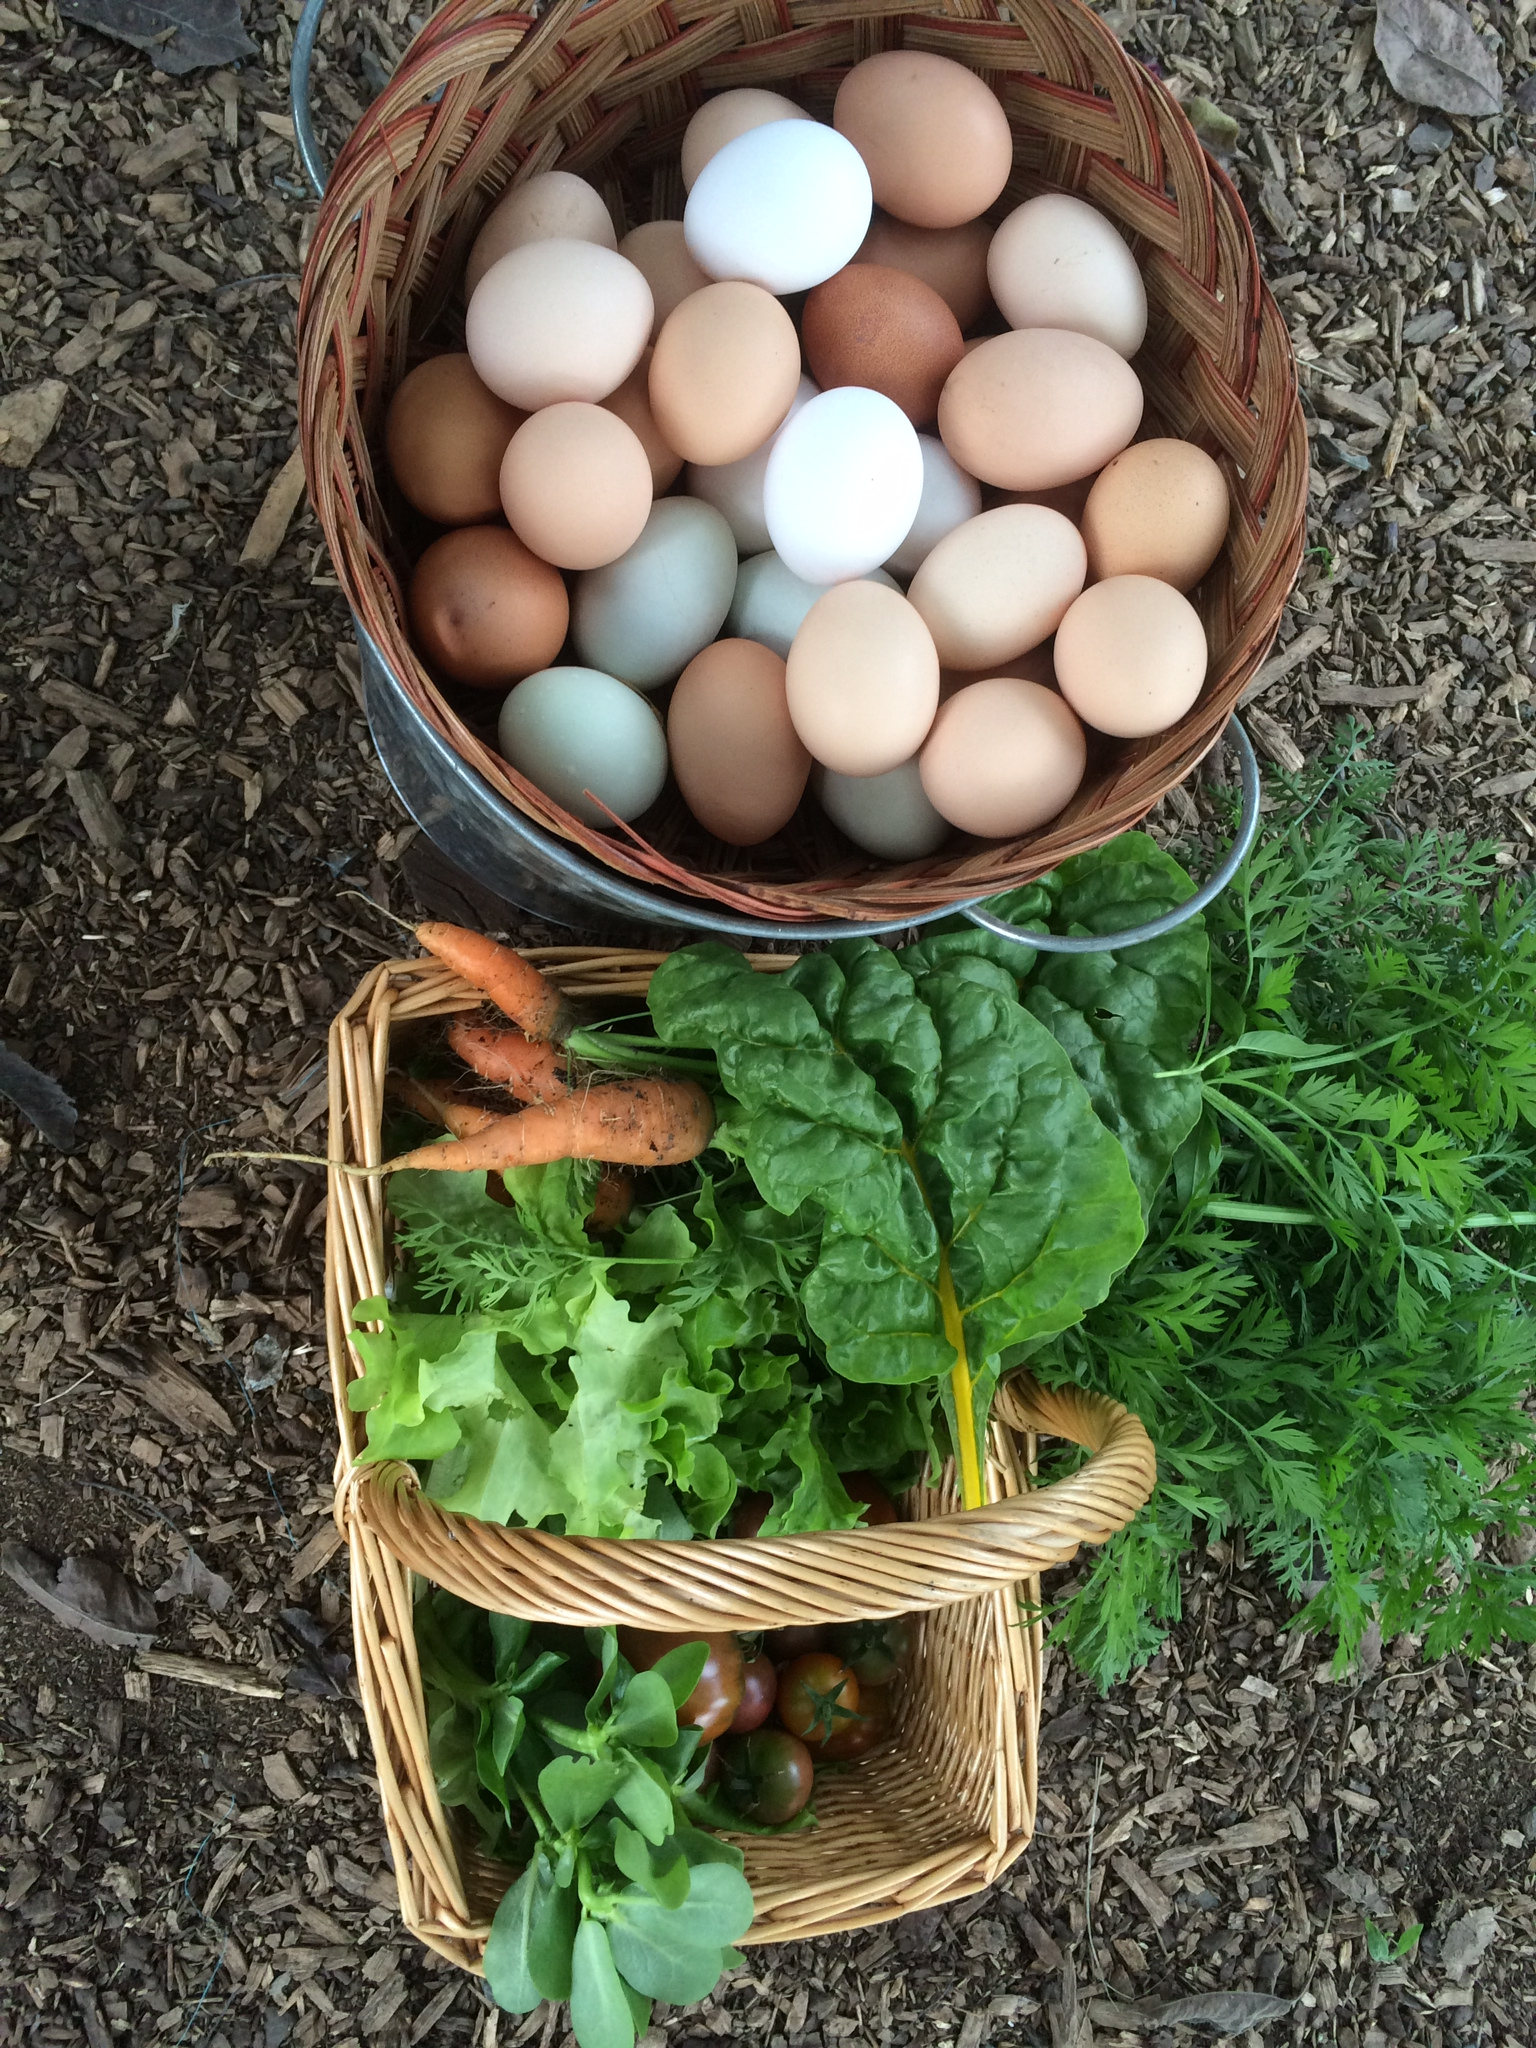 Fresh eggs & veggies